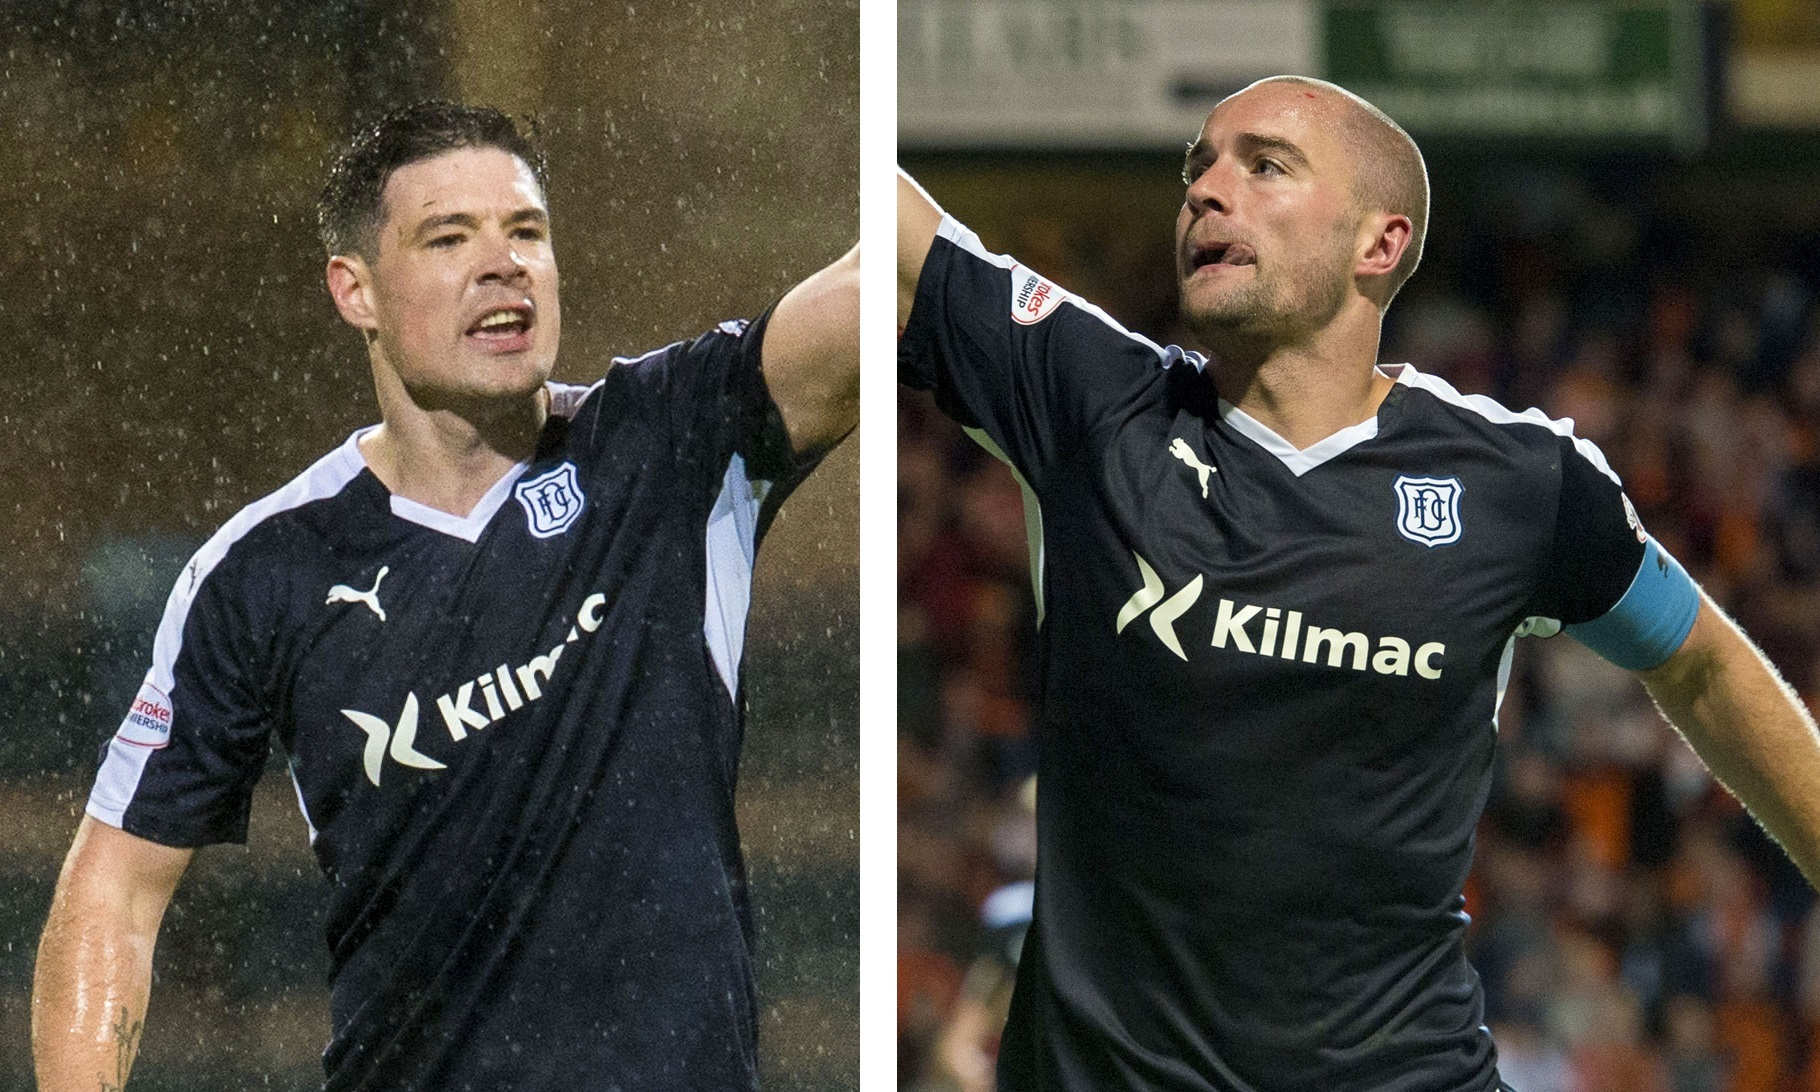 Darren O'Dea's influence has been huge since he joined the Dark Blues, while James McPake is on the road to recovery.